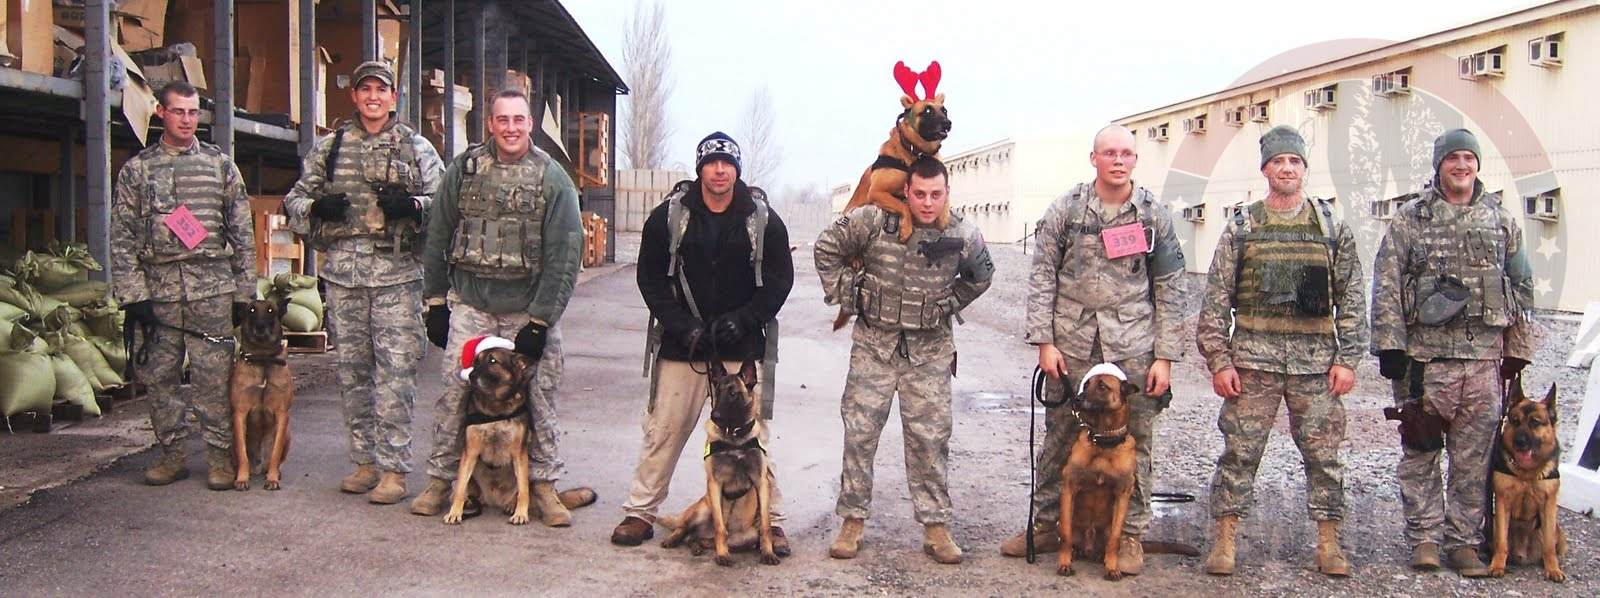 Handlers celebrating Christmas